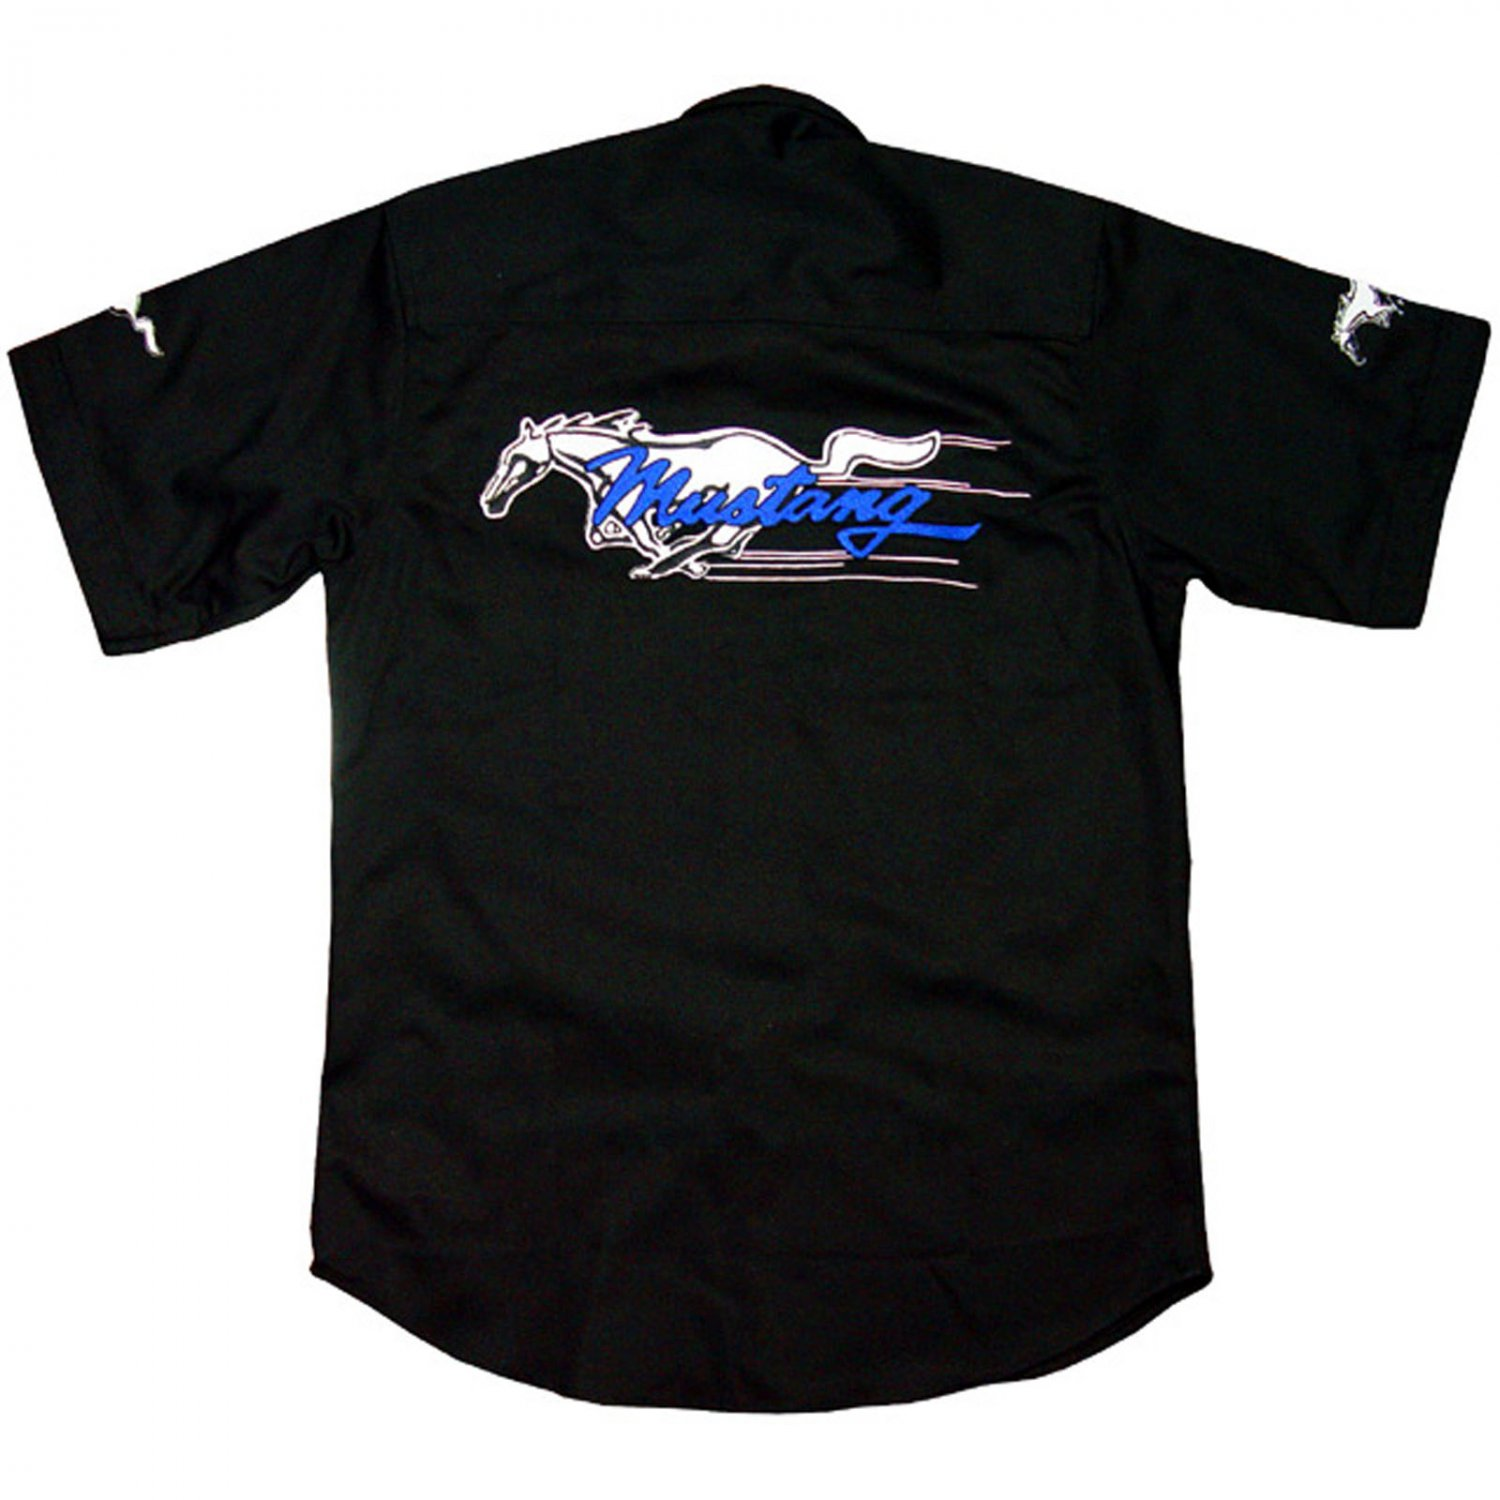 FORD MUSTANG MOTOR SPORT TEAM RACING SHIRT size M